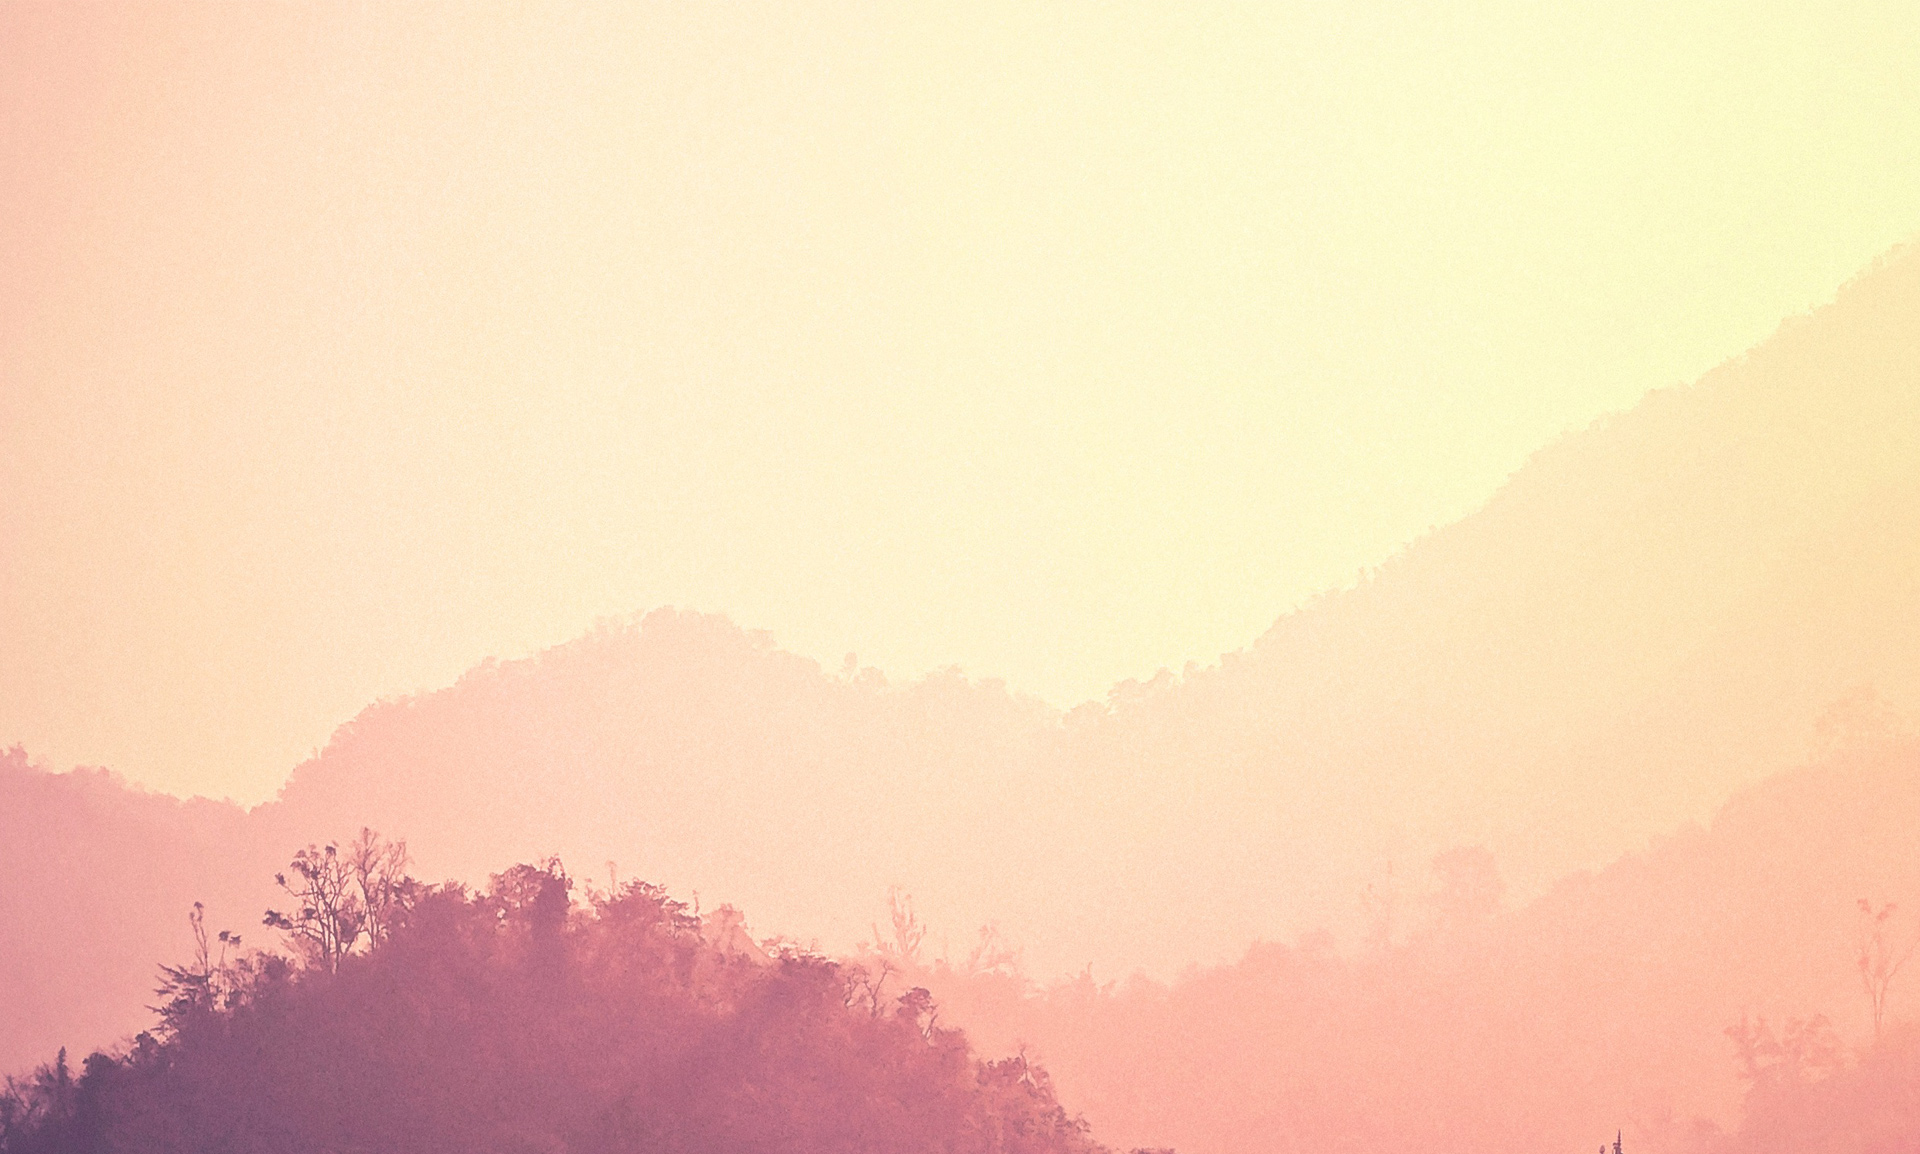 Red-sky-background-yoga